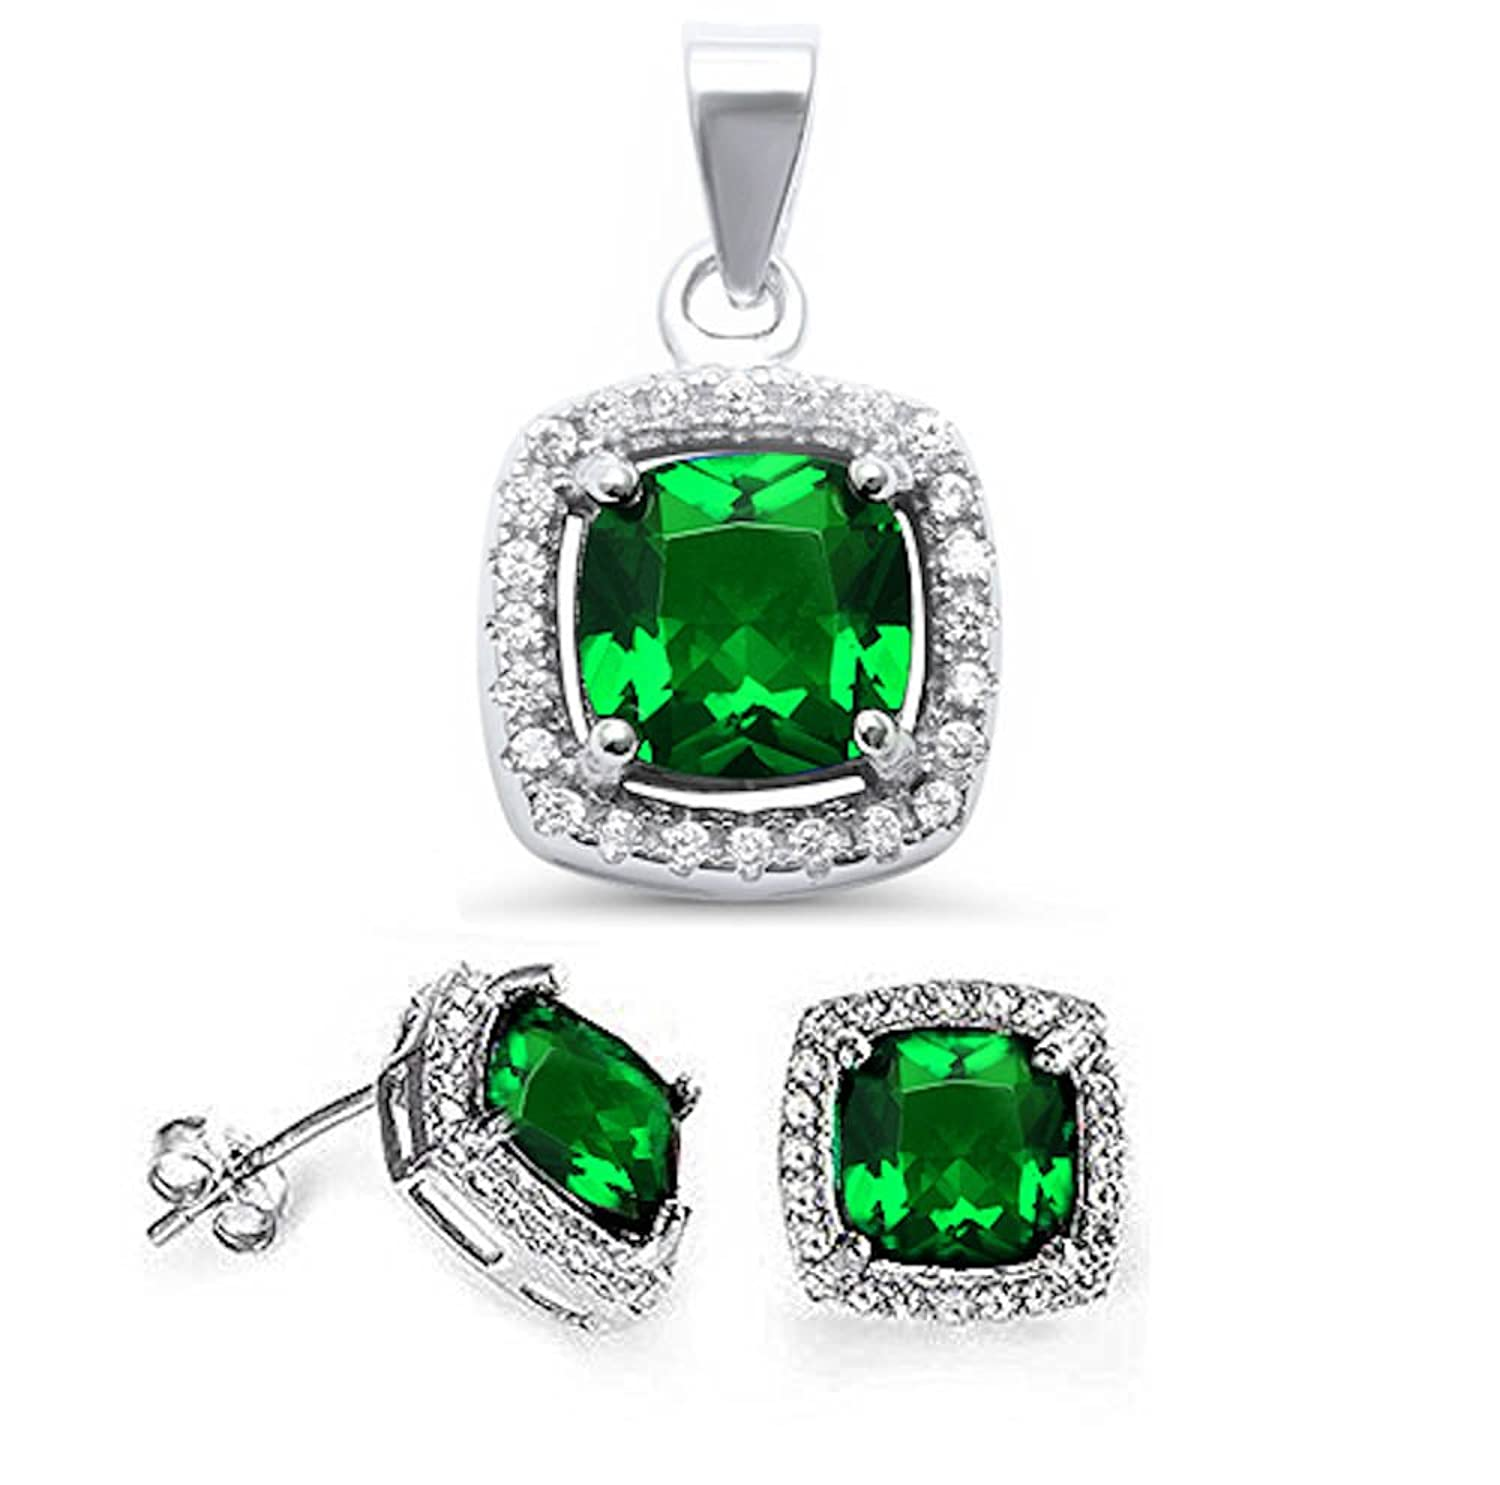 .925 Sterling Silver 3.50ct Cushion Cut Simulated Emerald & Cz Earring & Pendant Jewelry Set